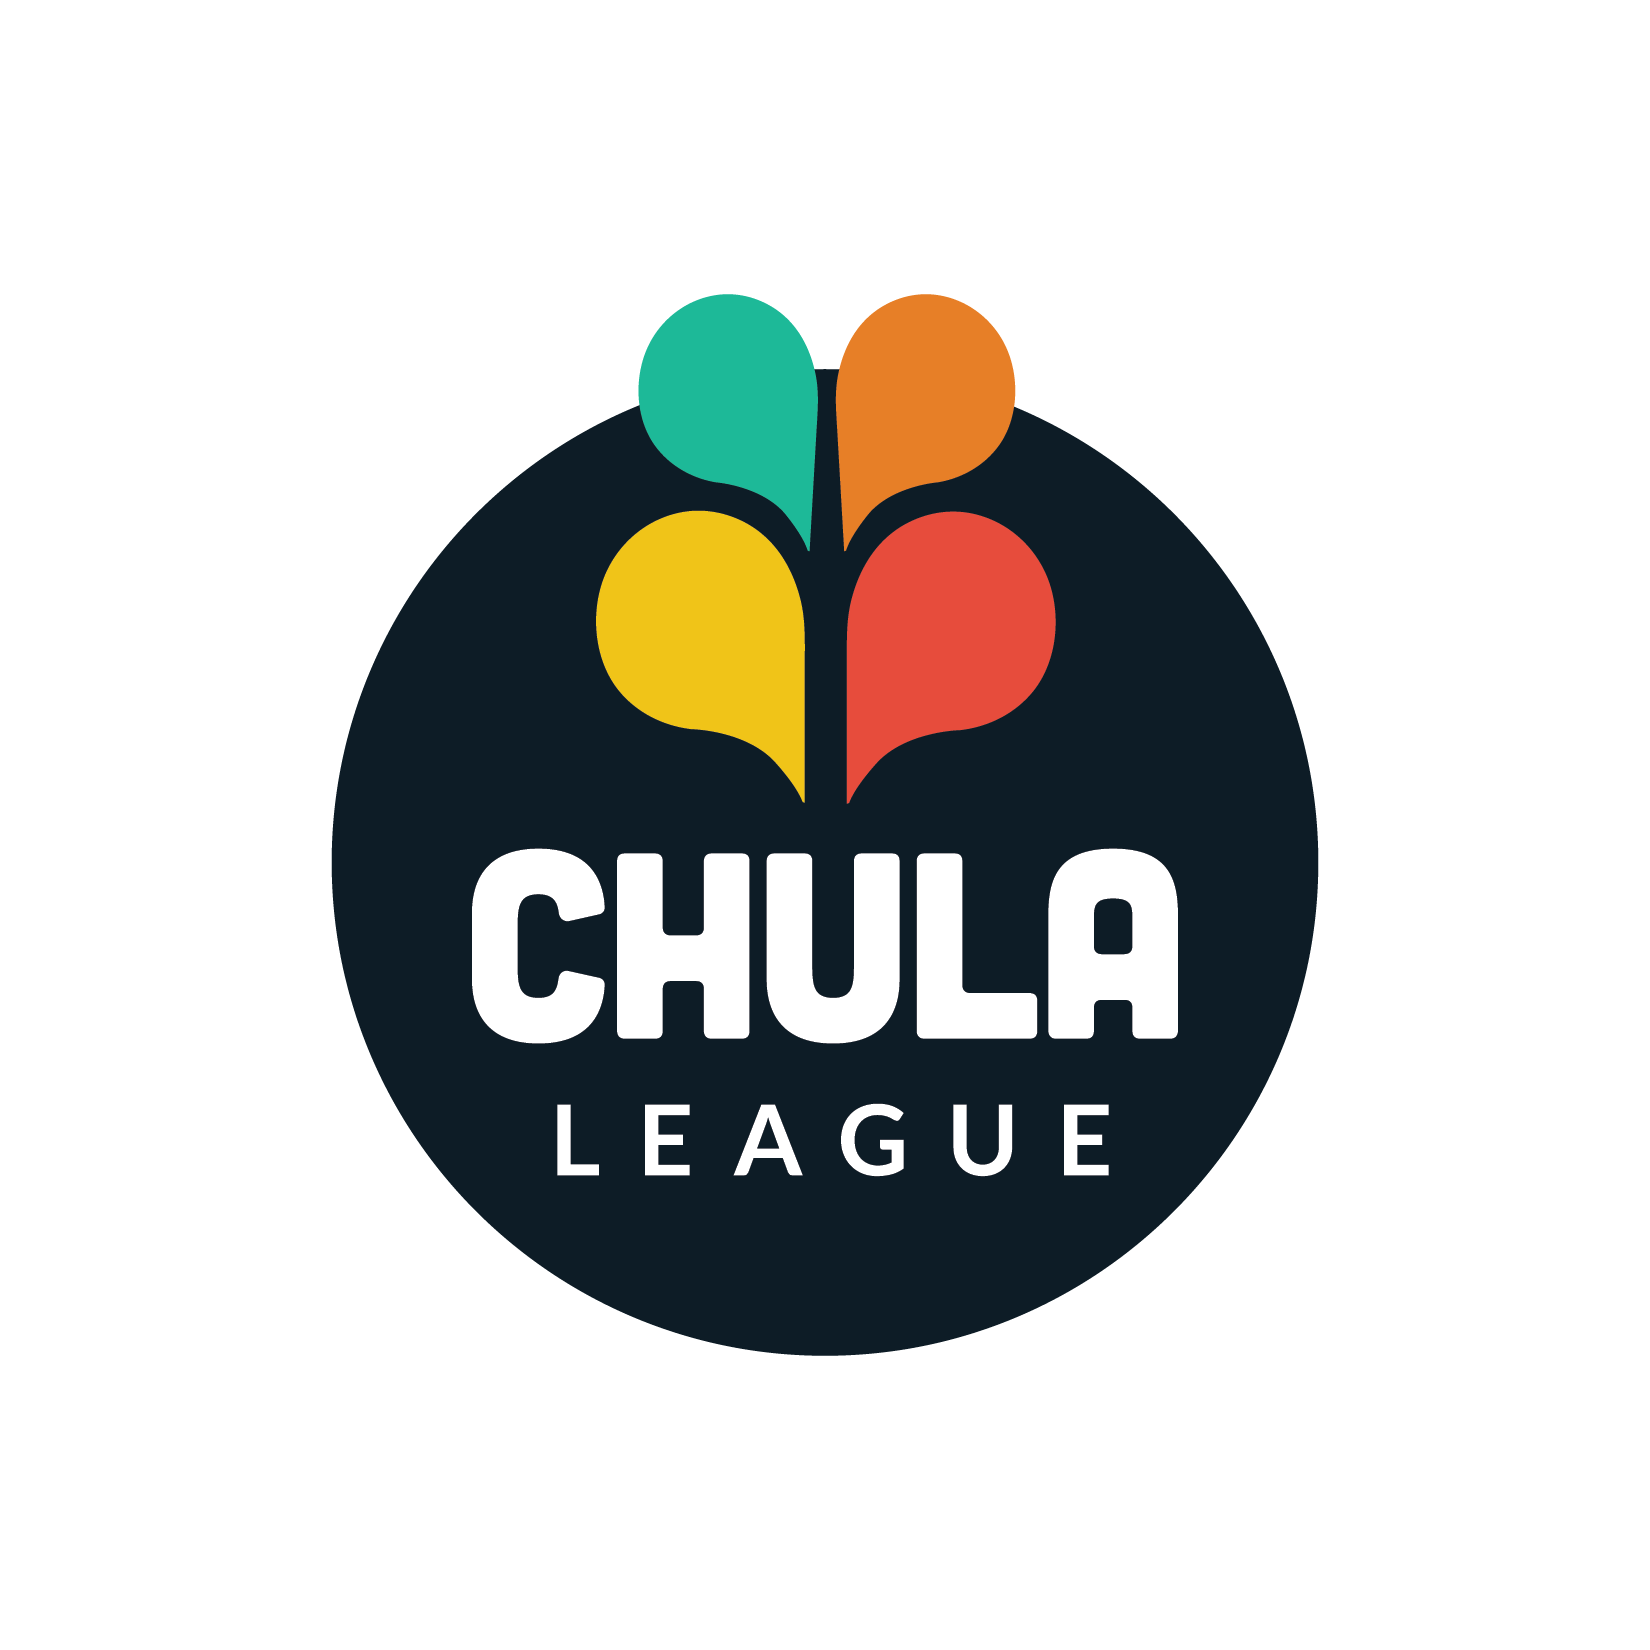 ChulaLeagueLogo-01.png